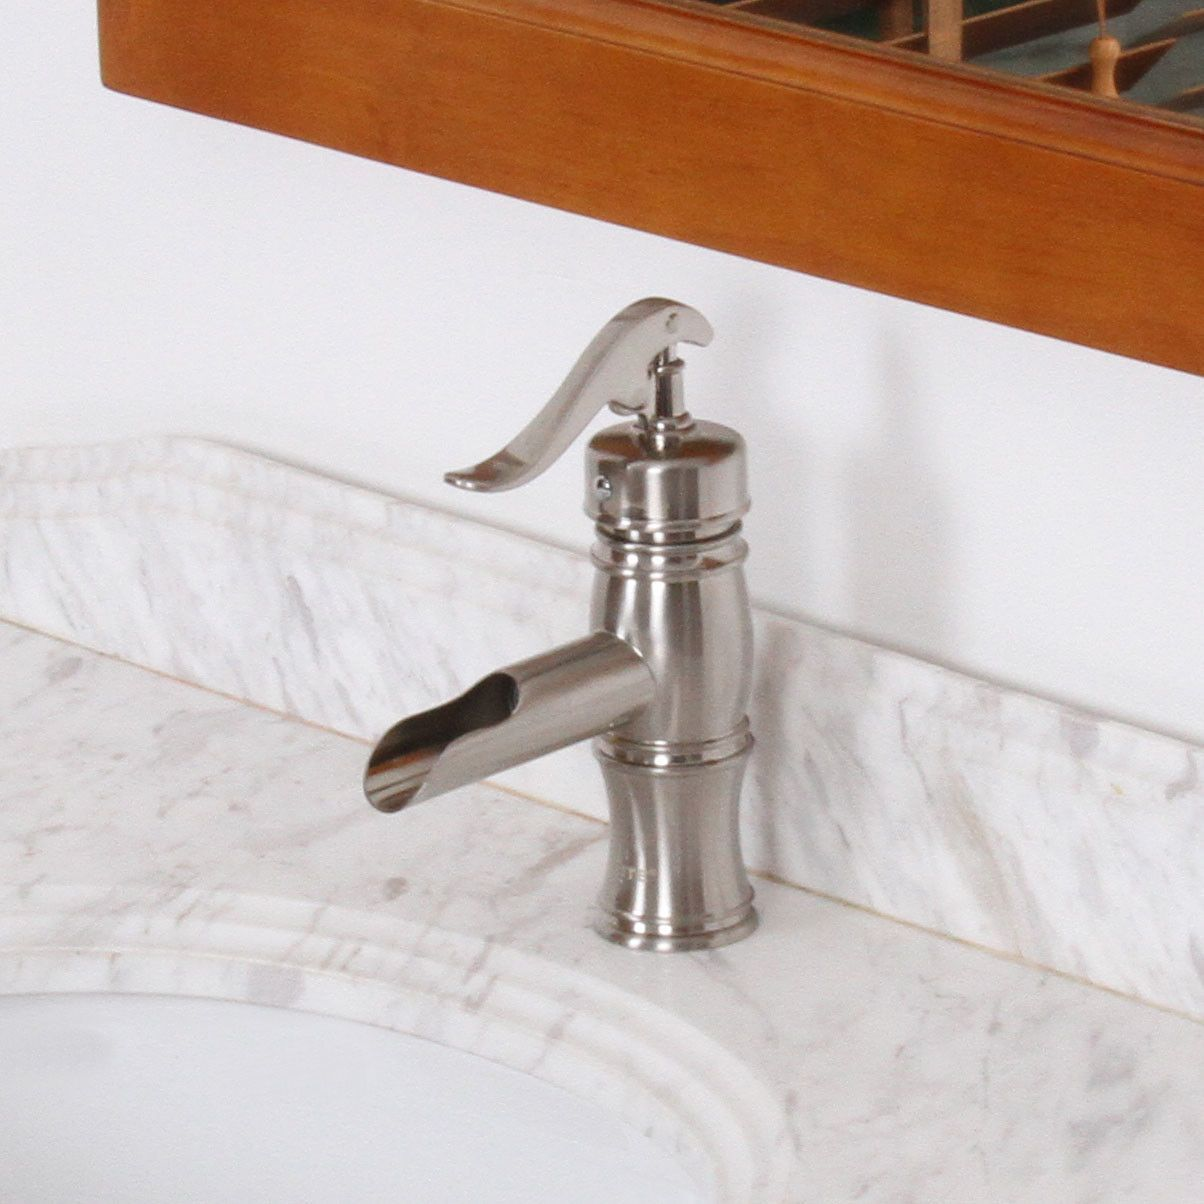 Vintage Single Handle Bathroom Water Pump Faucet | Products ...